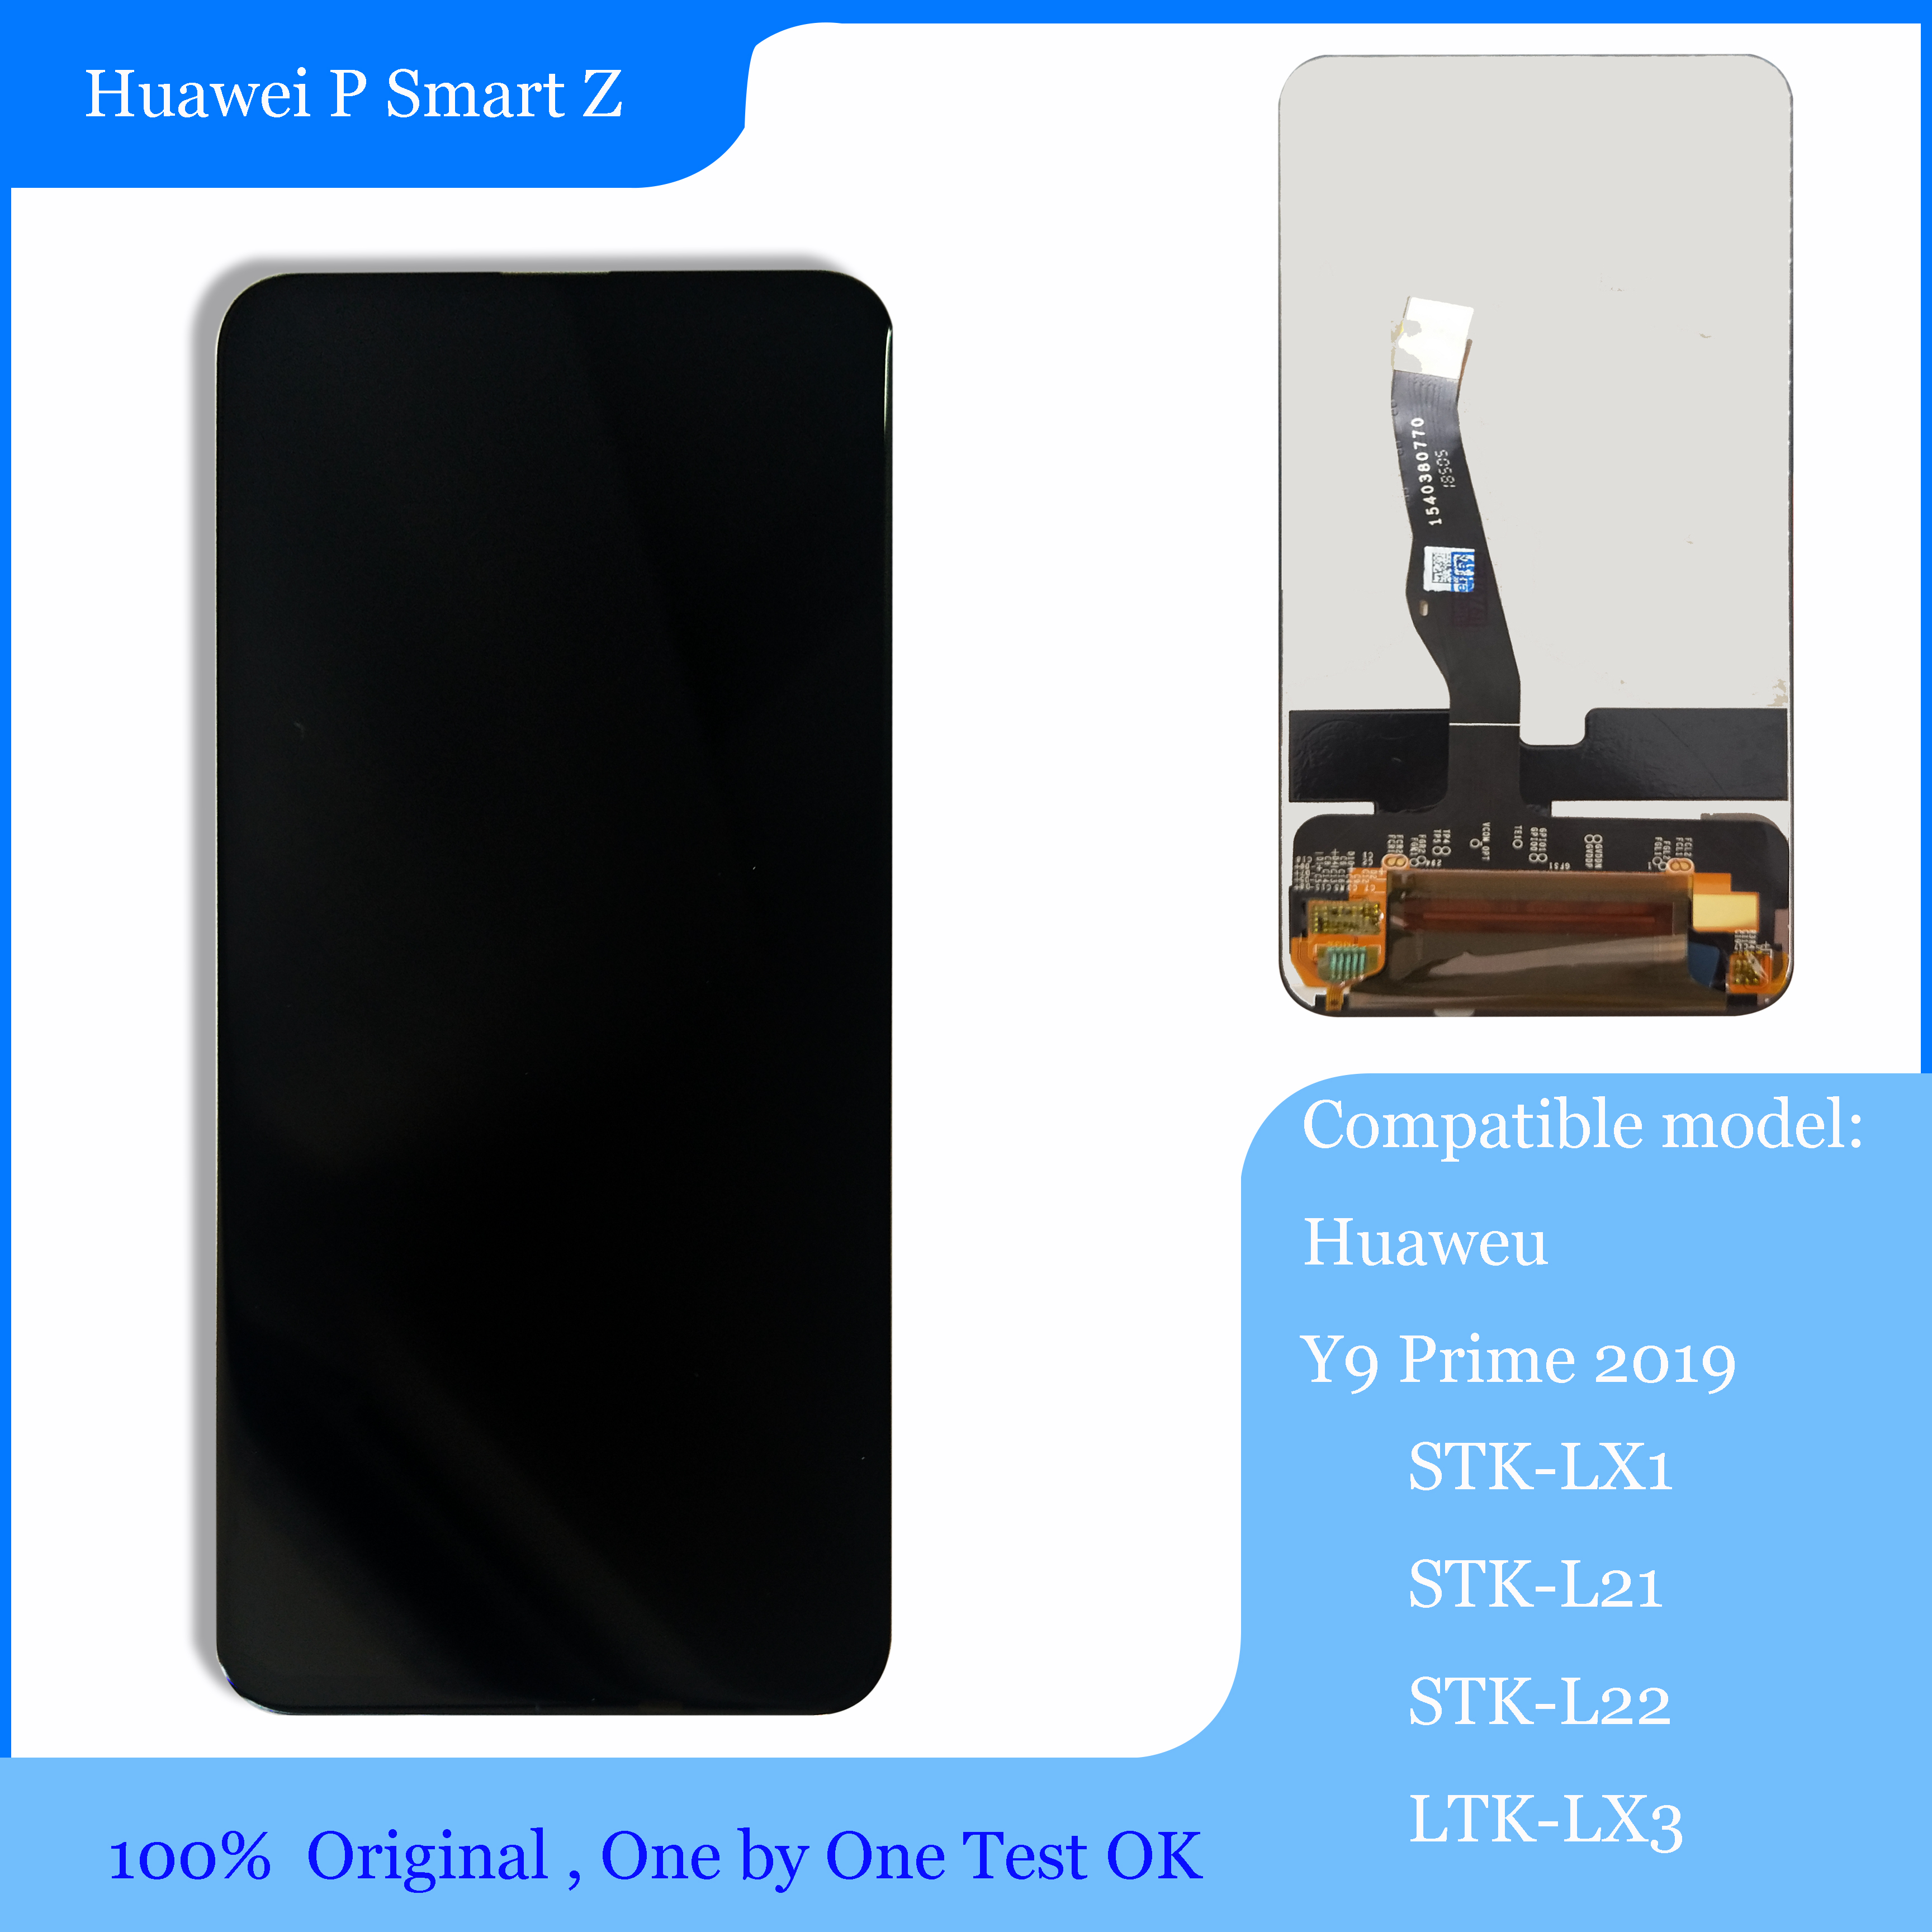 Original For <font><b>Huawei</b></font> P Smart Z / <font><b>Y9</b></font> Prime <font><b>2019</b></font> STK-LX1 STK-L21 STK-L22 LTK-LX3 <font><b>LCD</b></font> Display Touch Screen Digitizer Assembly parts image